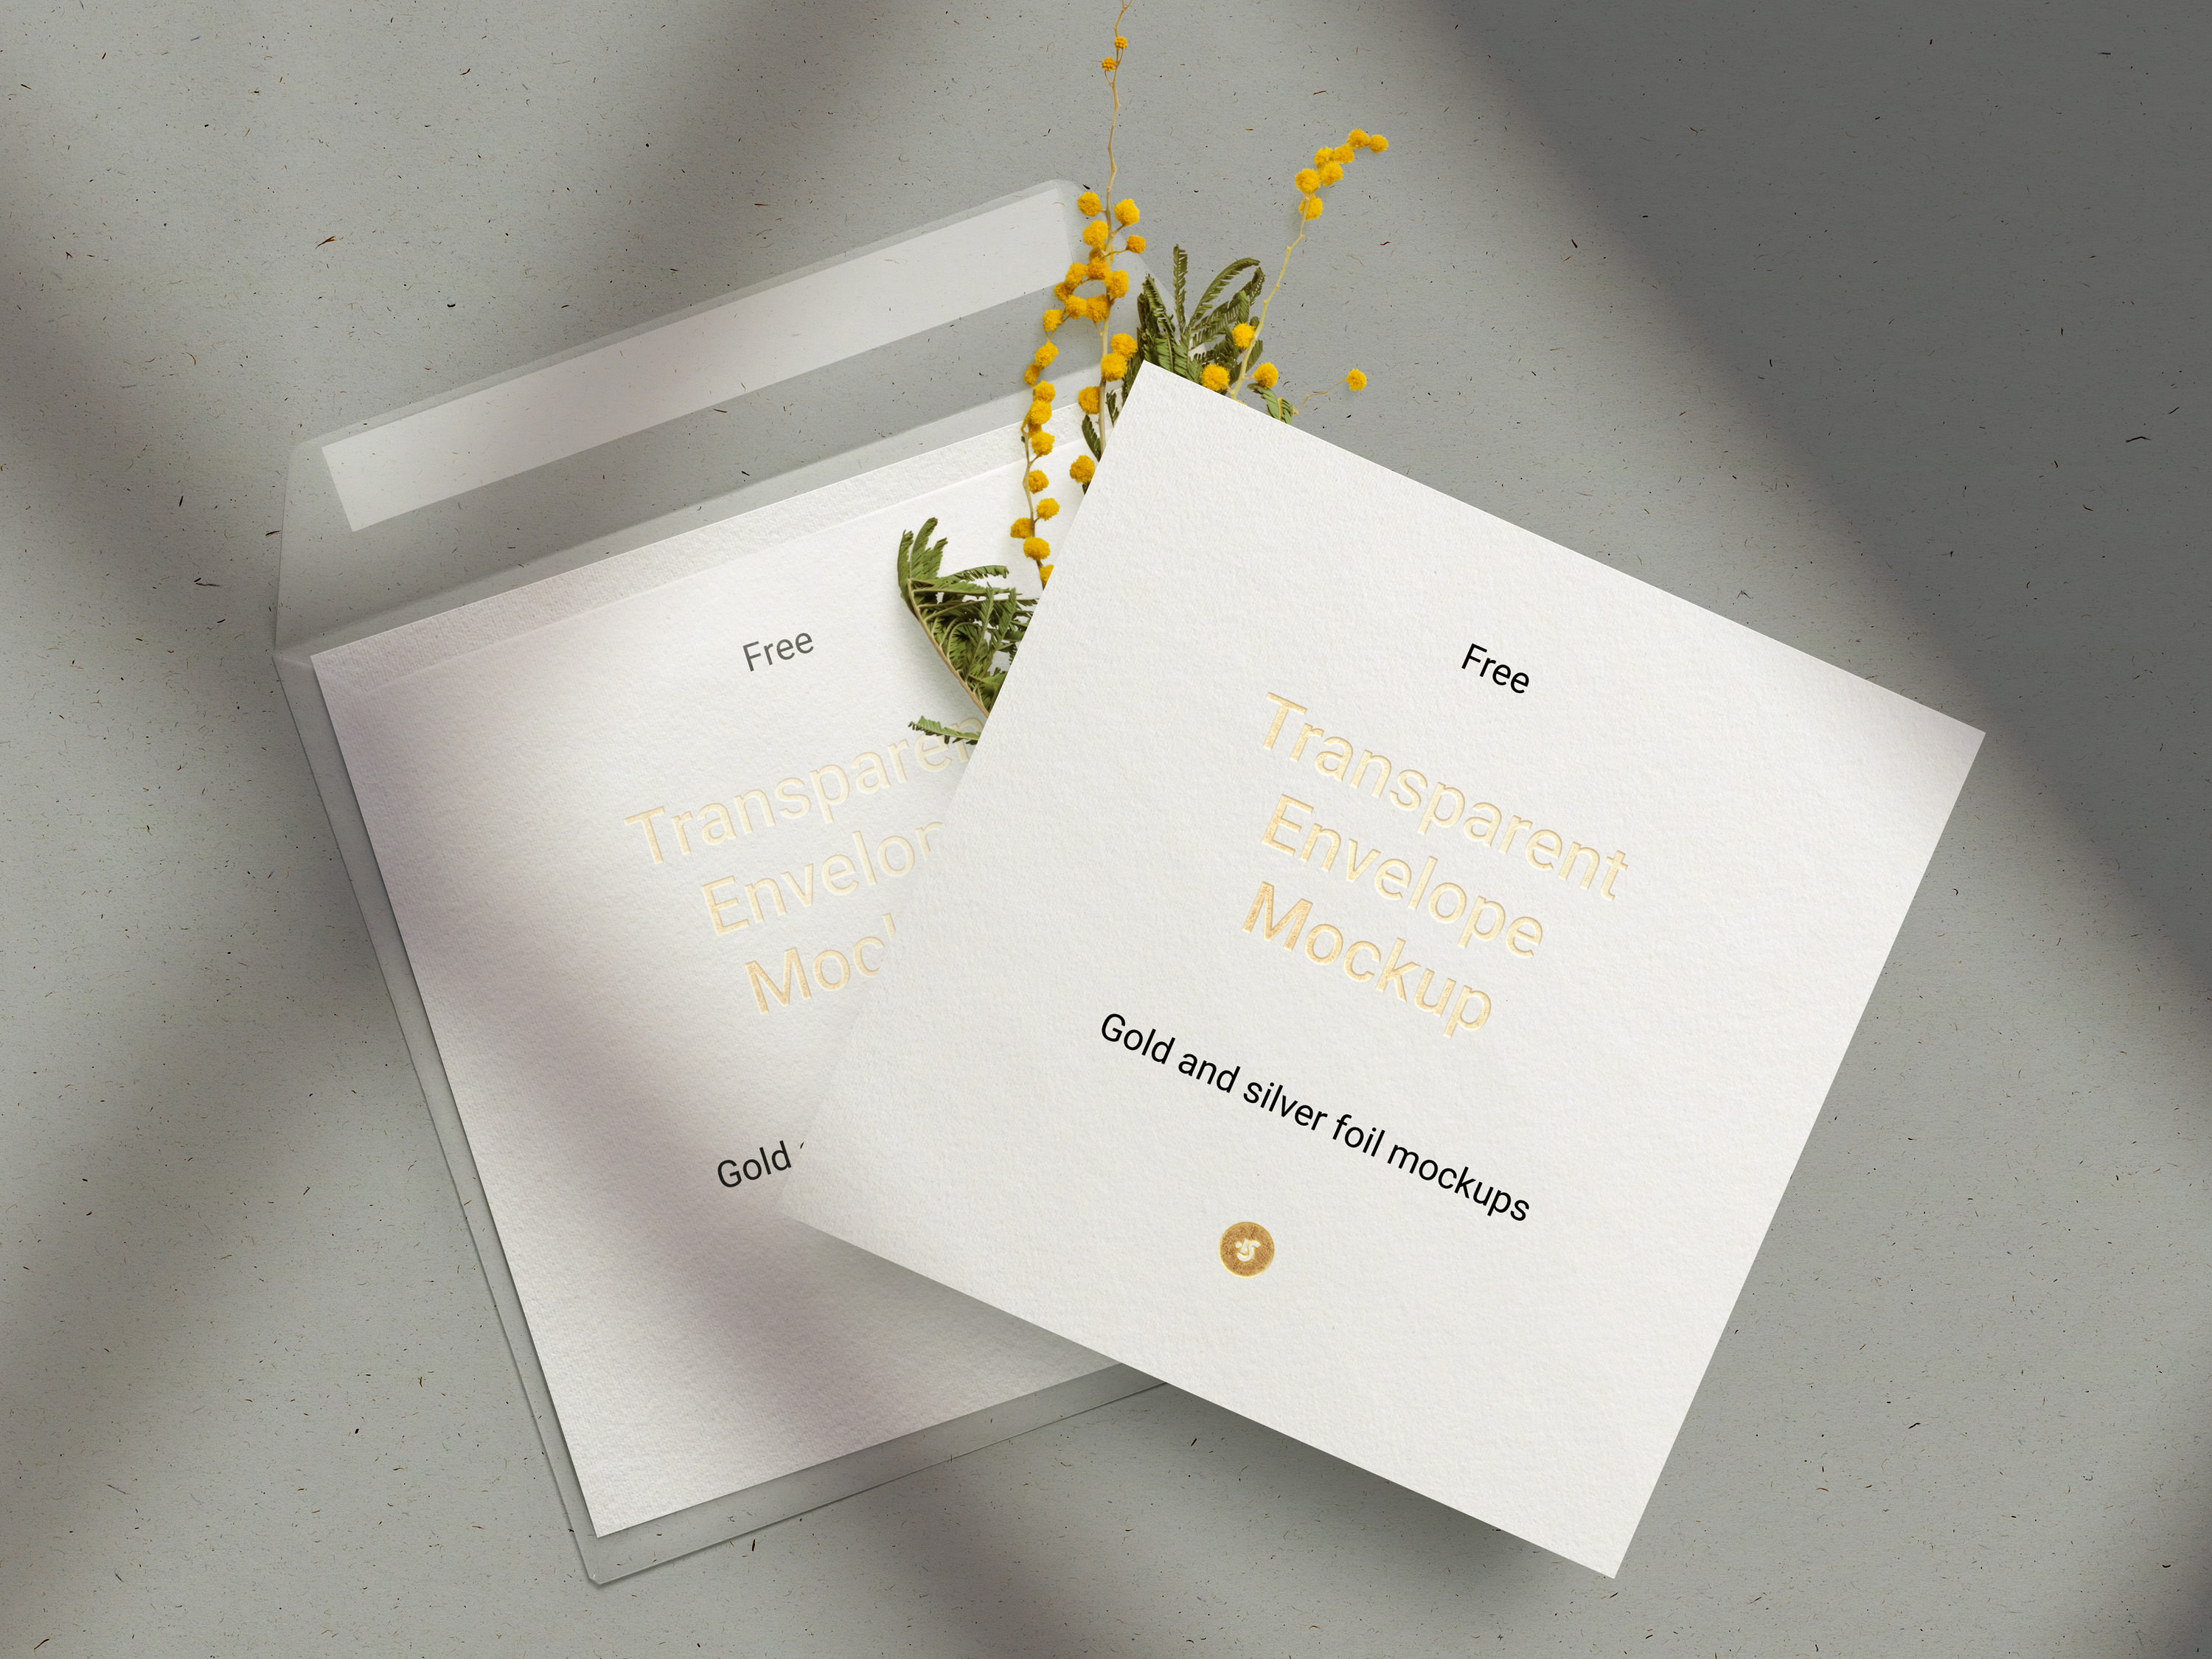 Free Envelope Card Mockup Ls Graphics